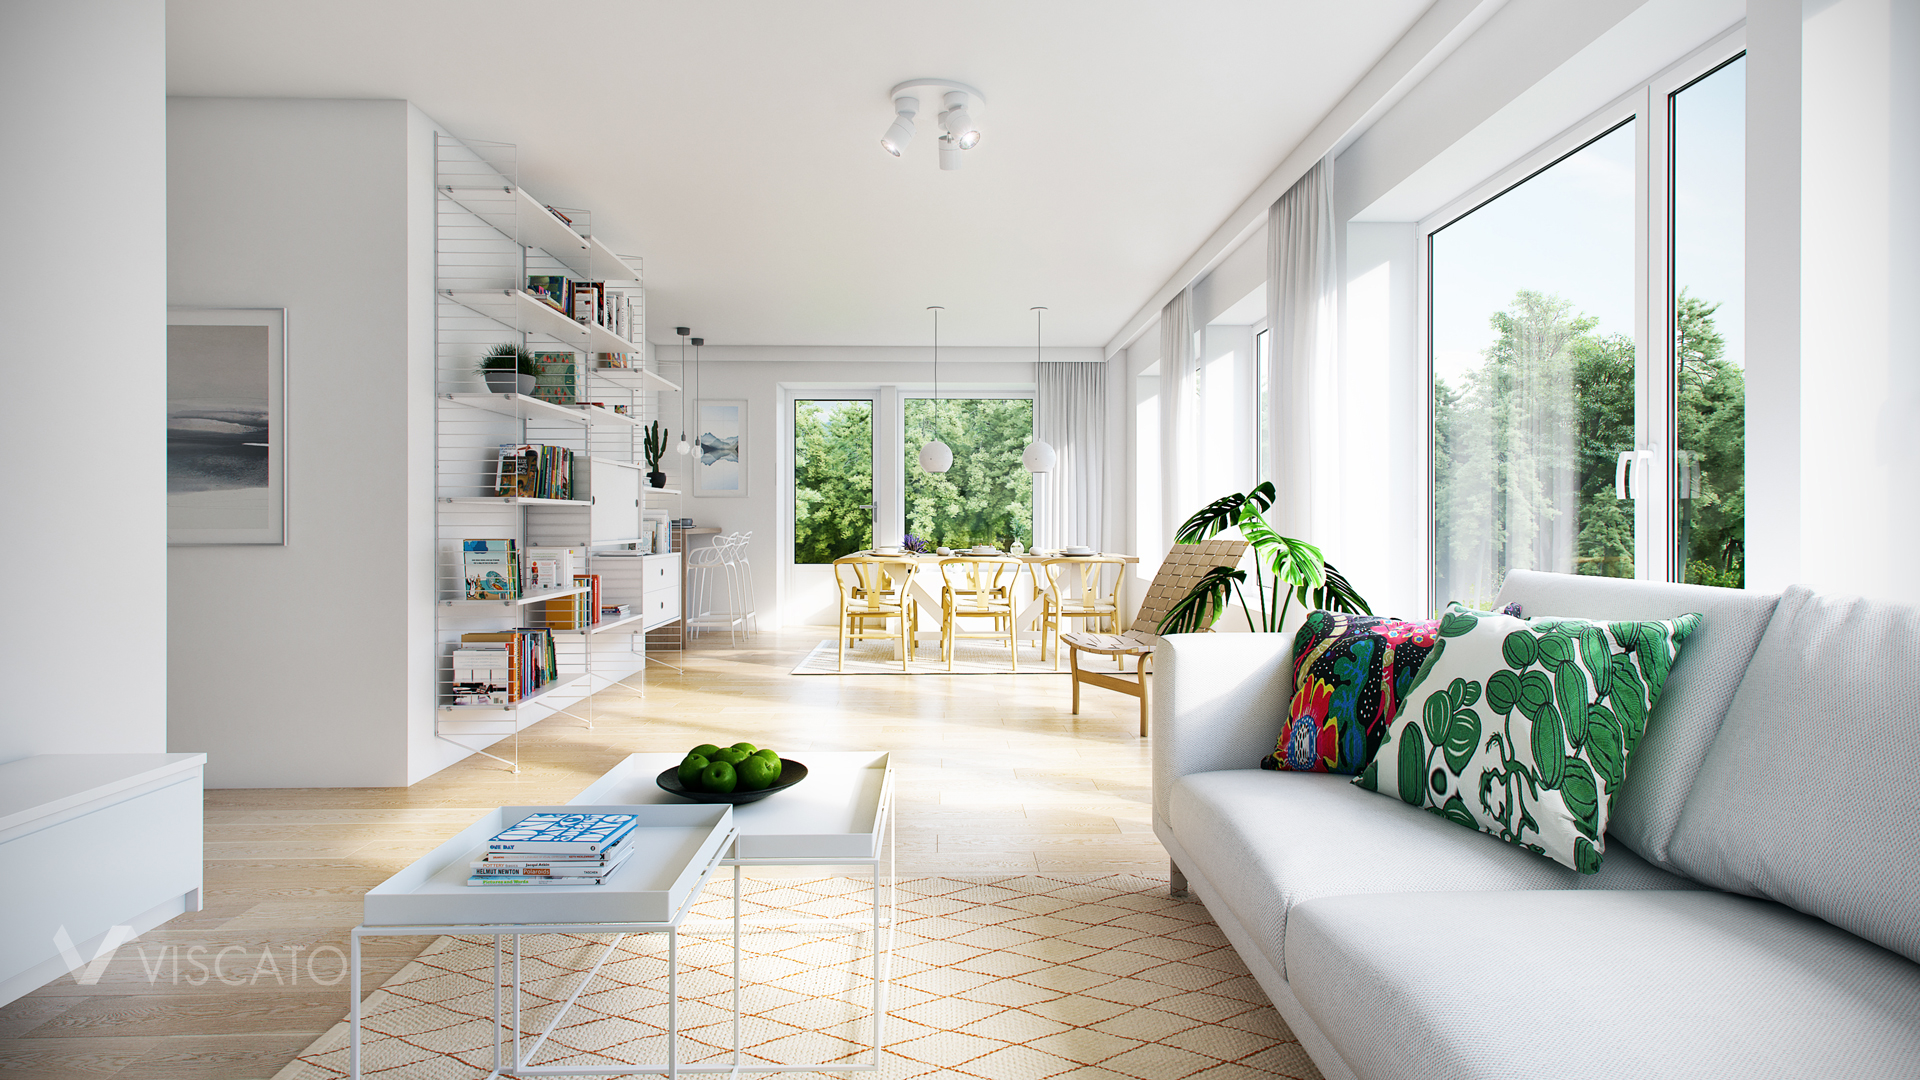 Photorealistic visualization of bright living space Viscato